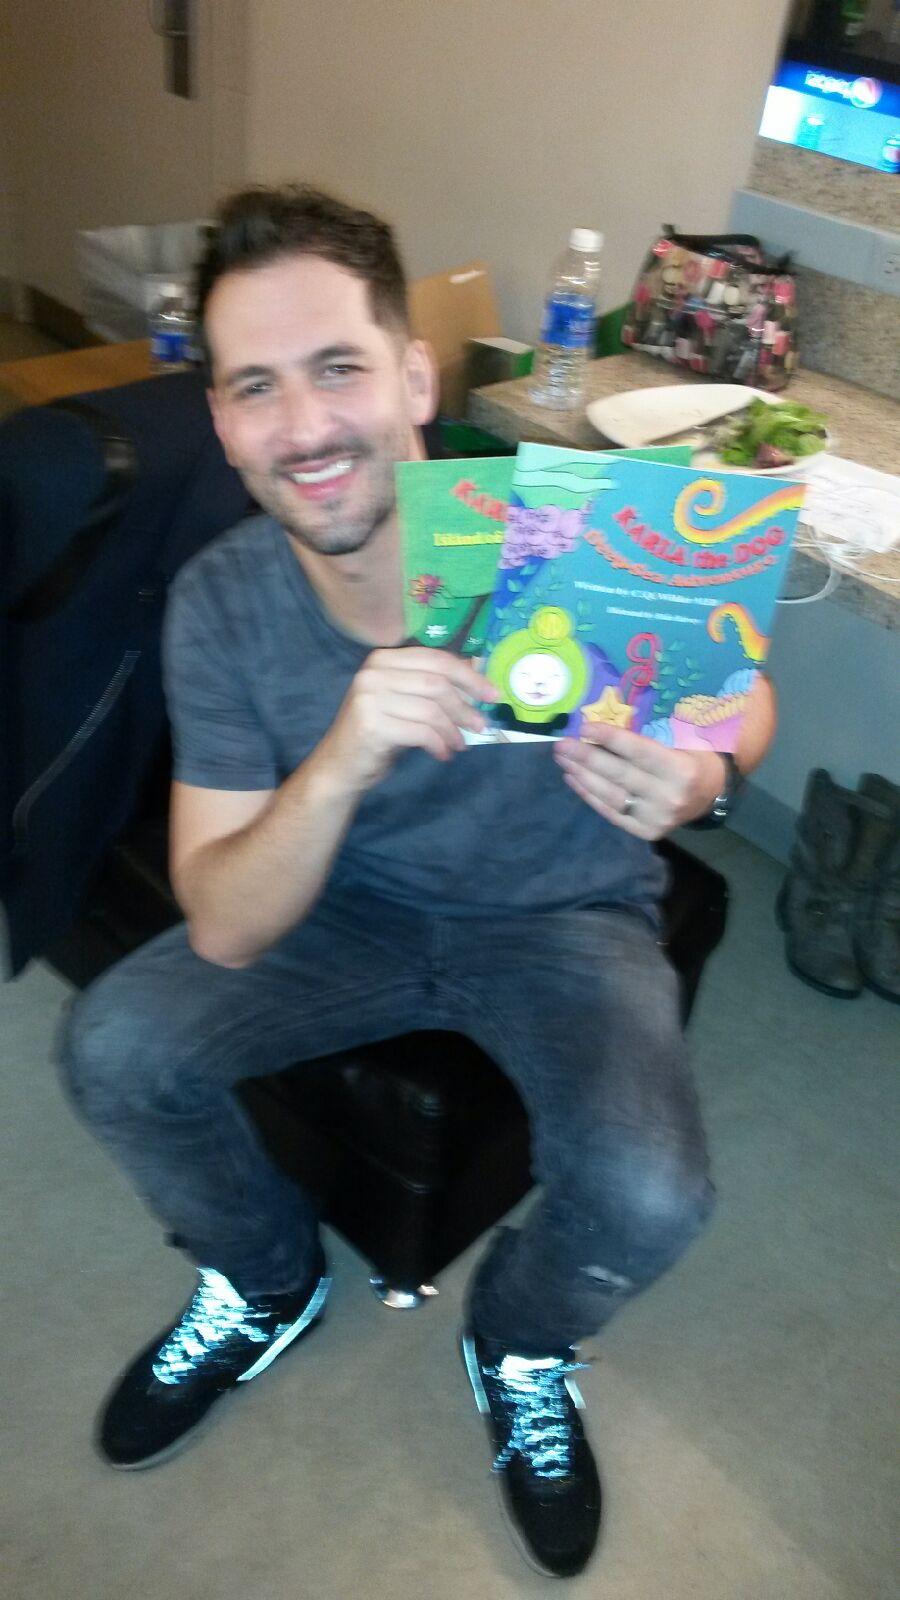 Jon B is my FAVORITE singer ever. I have been a fan for 20 years now and it's such a blessing to know he will be reading Karla with his kids!